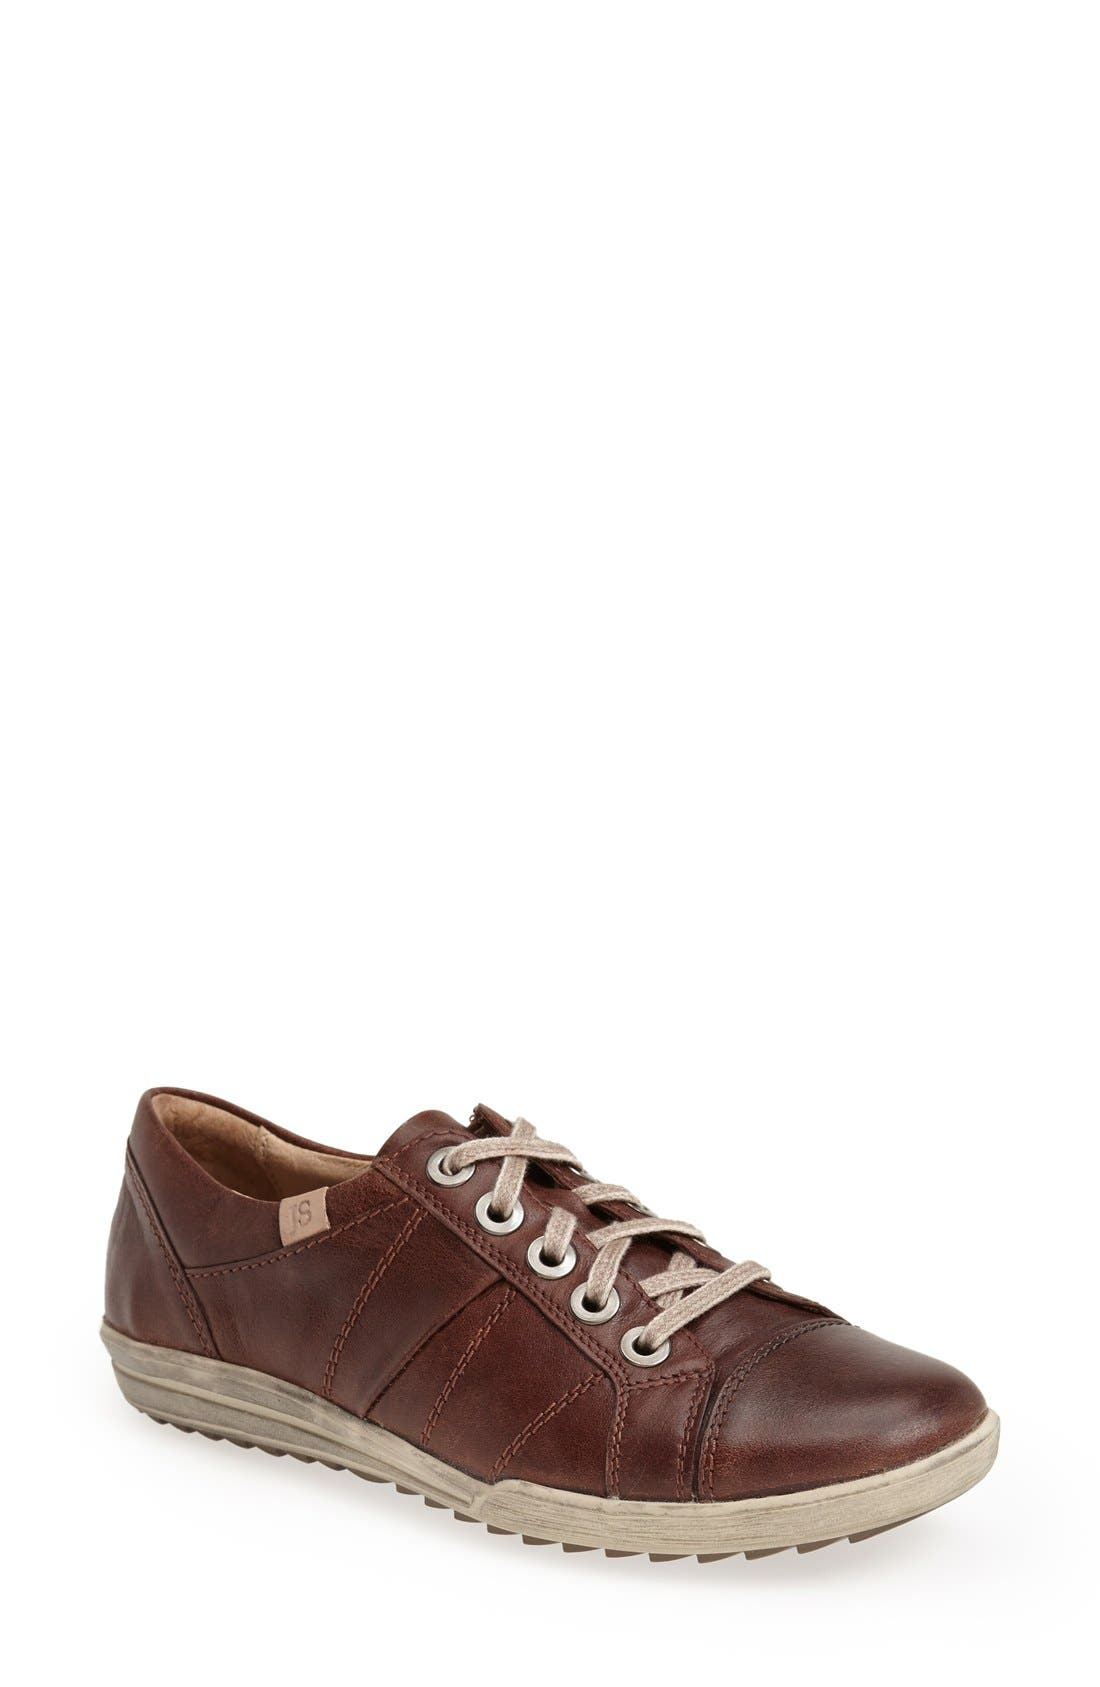 'Dany 05' Leather Sneaker,                             Main thumbnail 5, color,